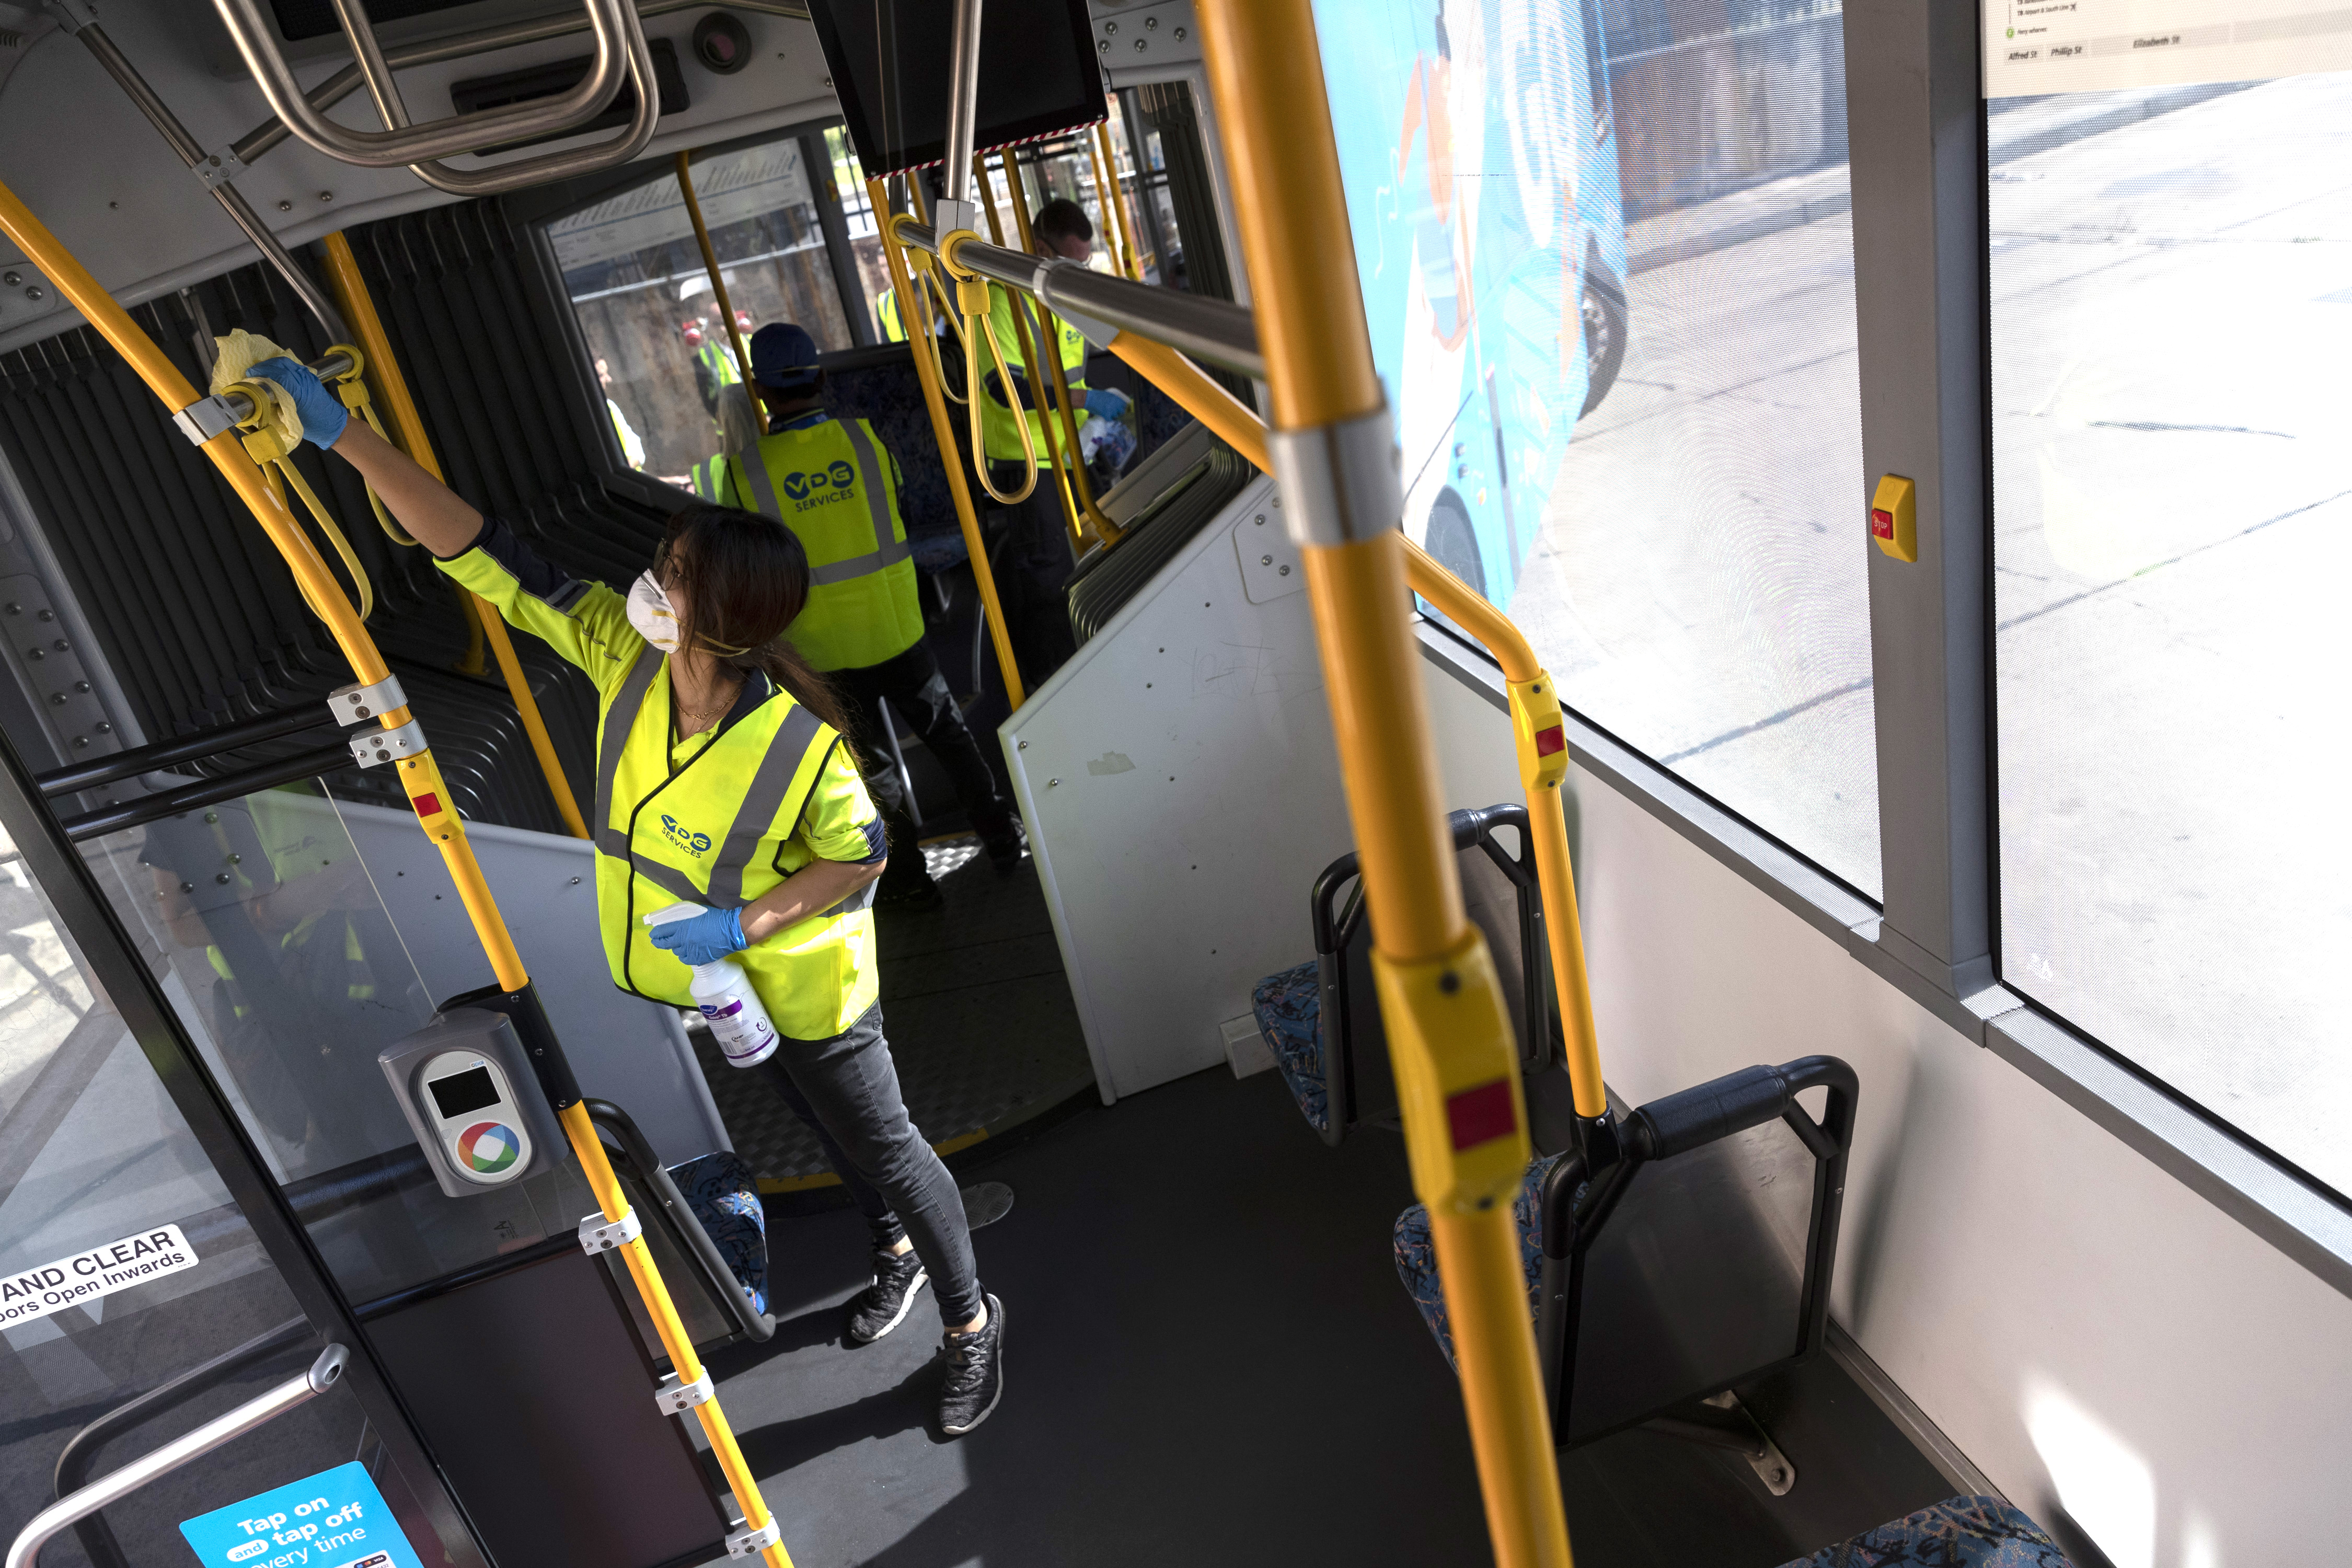 A cleaner at work at the Waverley Bus Depot in Sydney. NSW Treasurer Dominic Perrottet said the equivalent of 3000 full-time cleaners would be working by the end of June in an effort to help combat COVID-19 in New South Wales